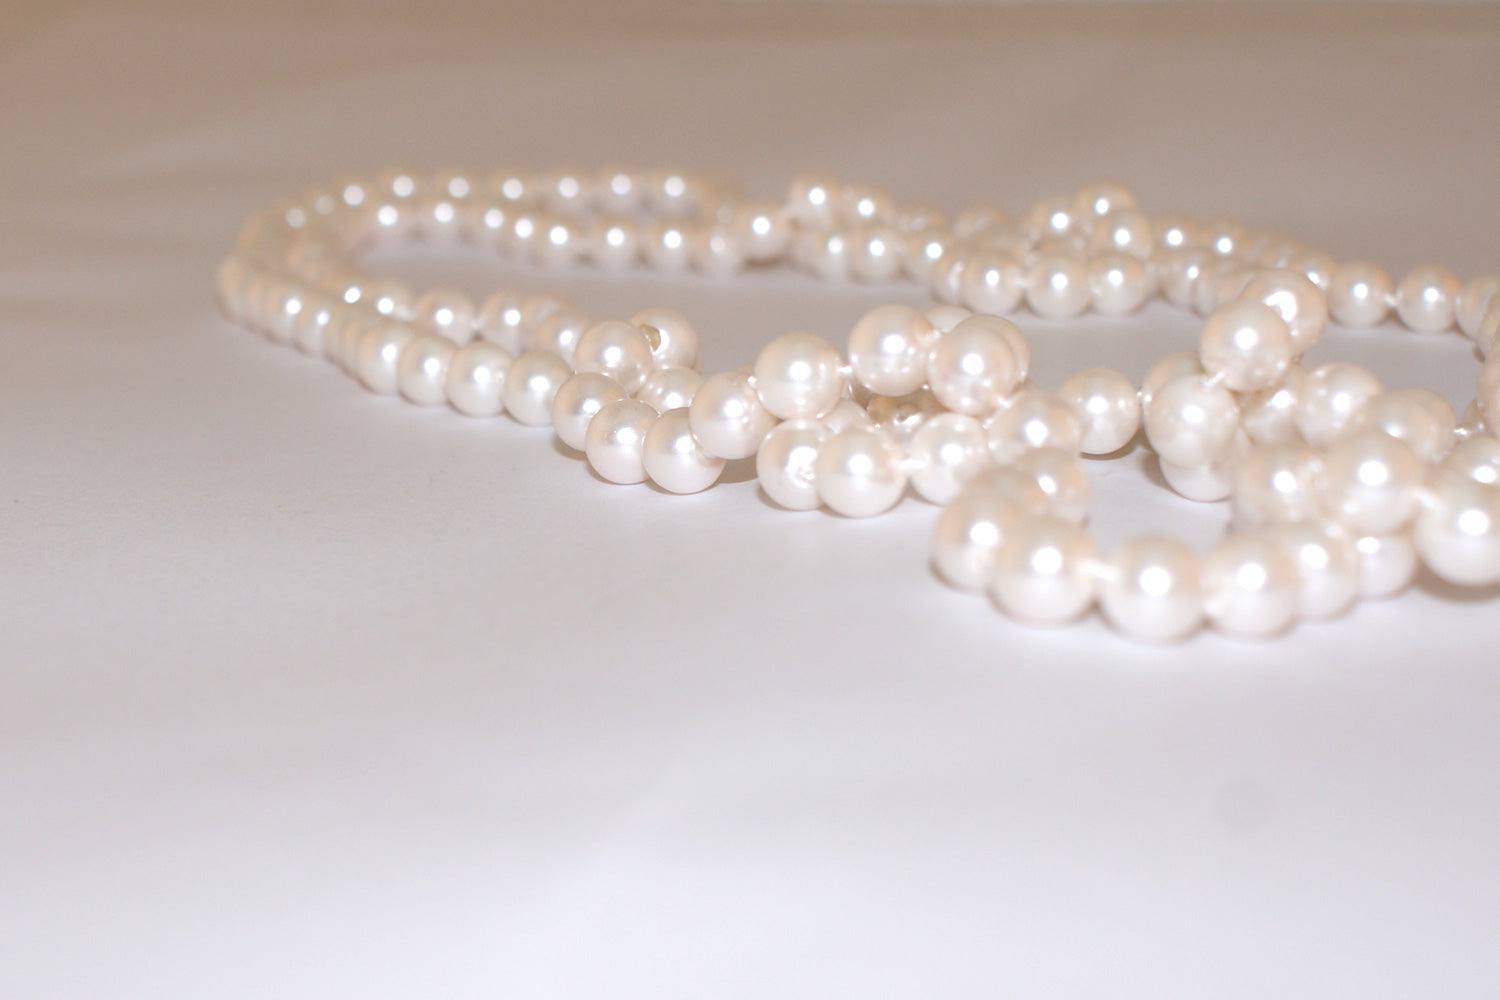 Pearls Necklace | Annah Stretton | Designer Accessories